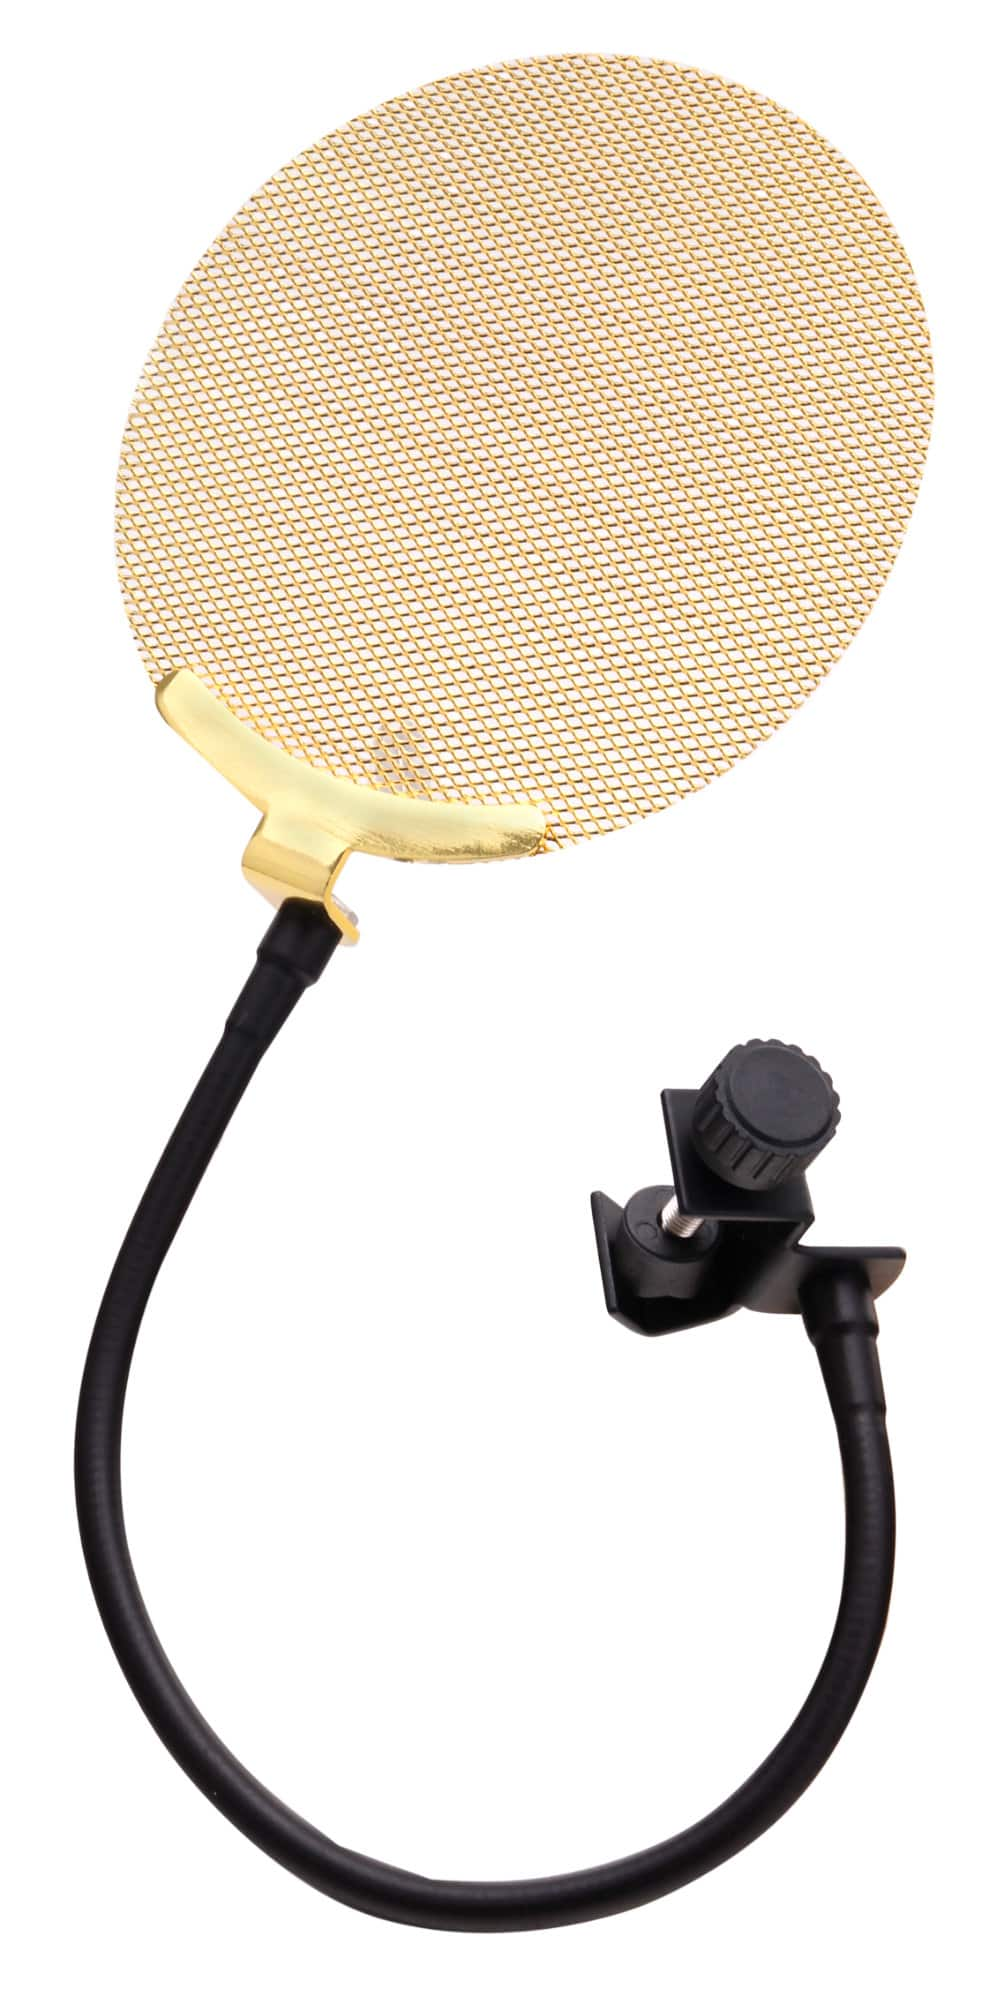 Pronomic Cm 22 Large Diaphragm Microphone Set Incl Stand Gold Pop Home Network Using Electrical Wiring On Popscreen Screen